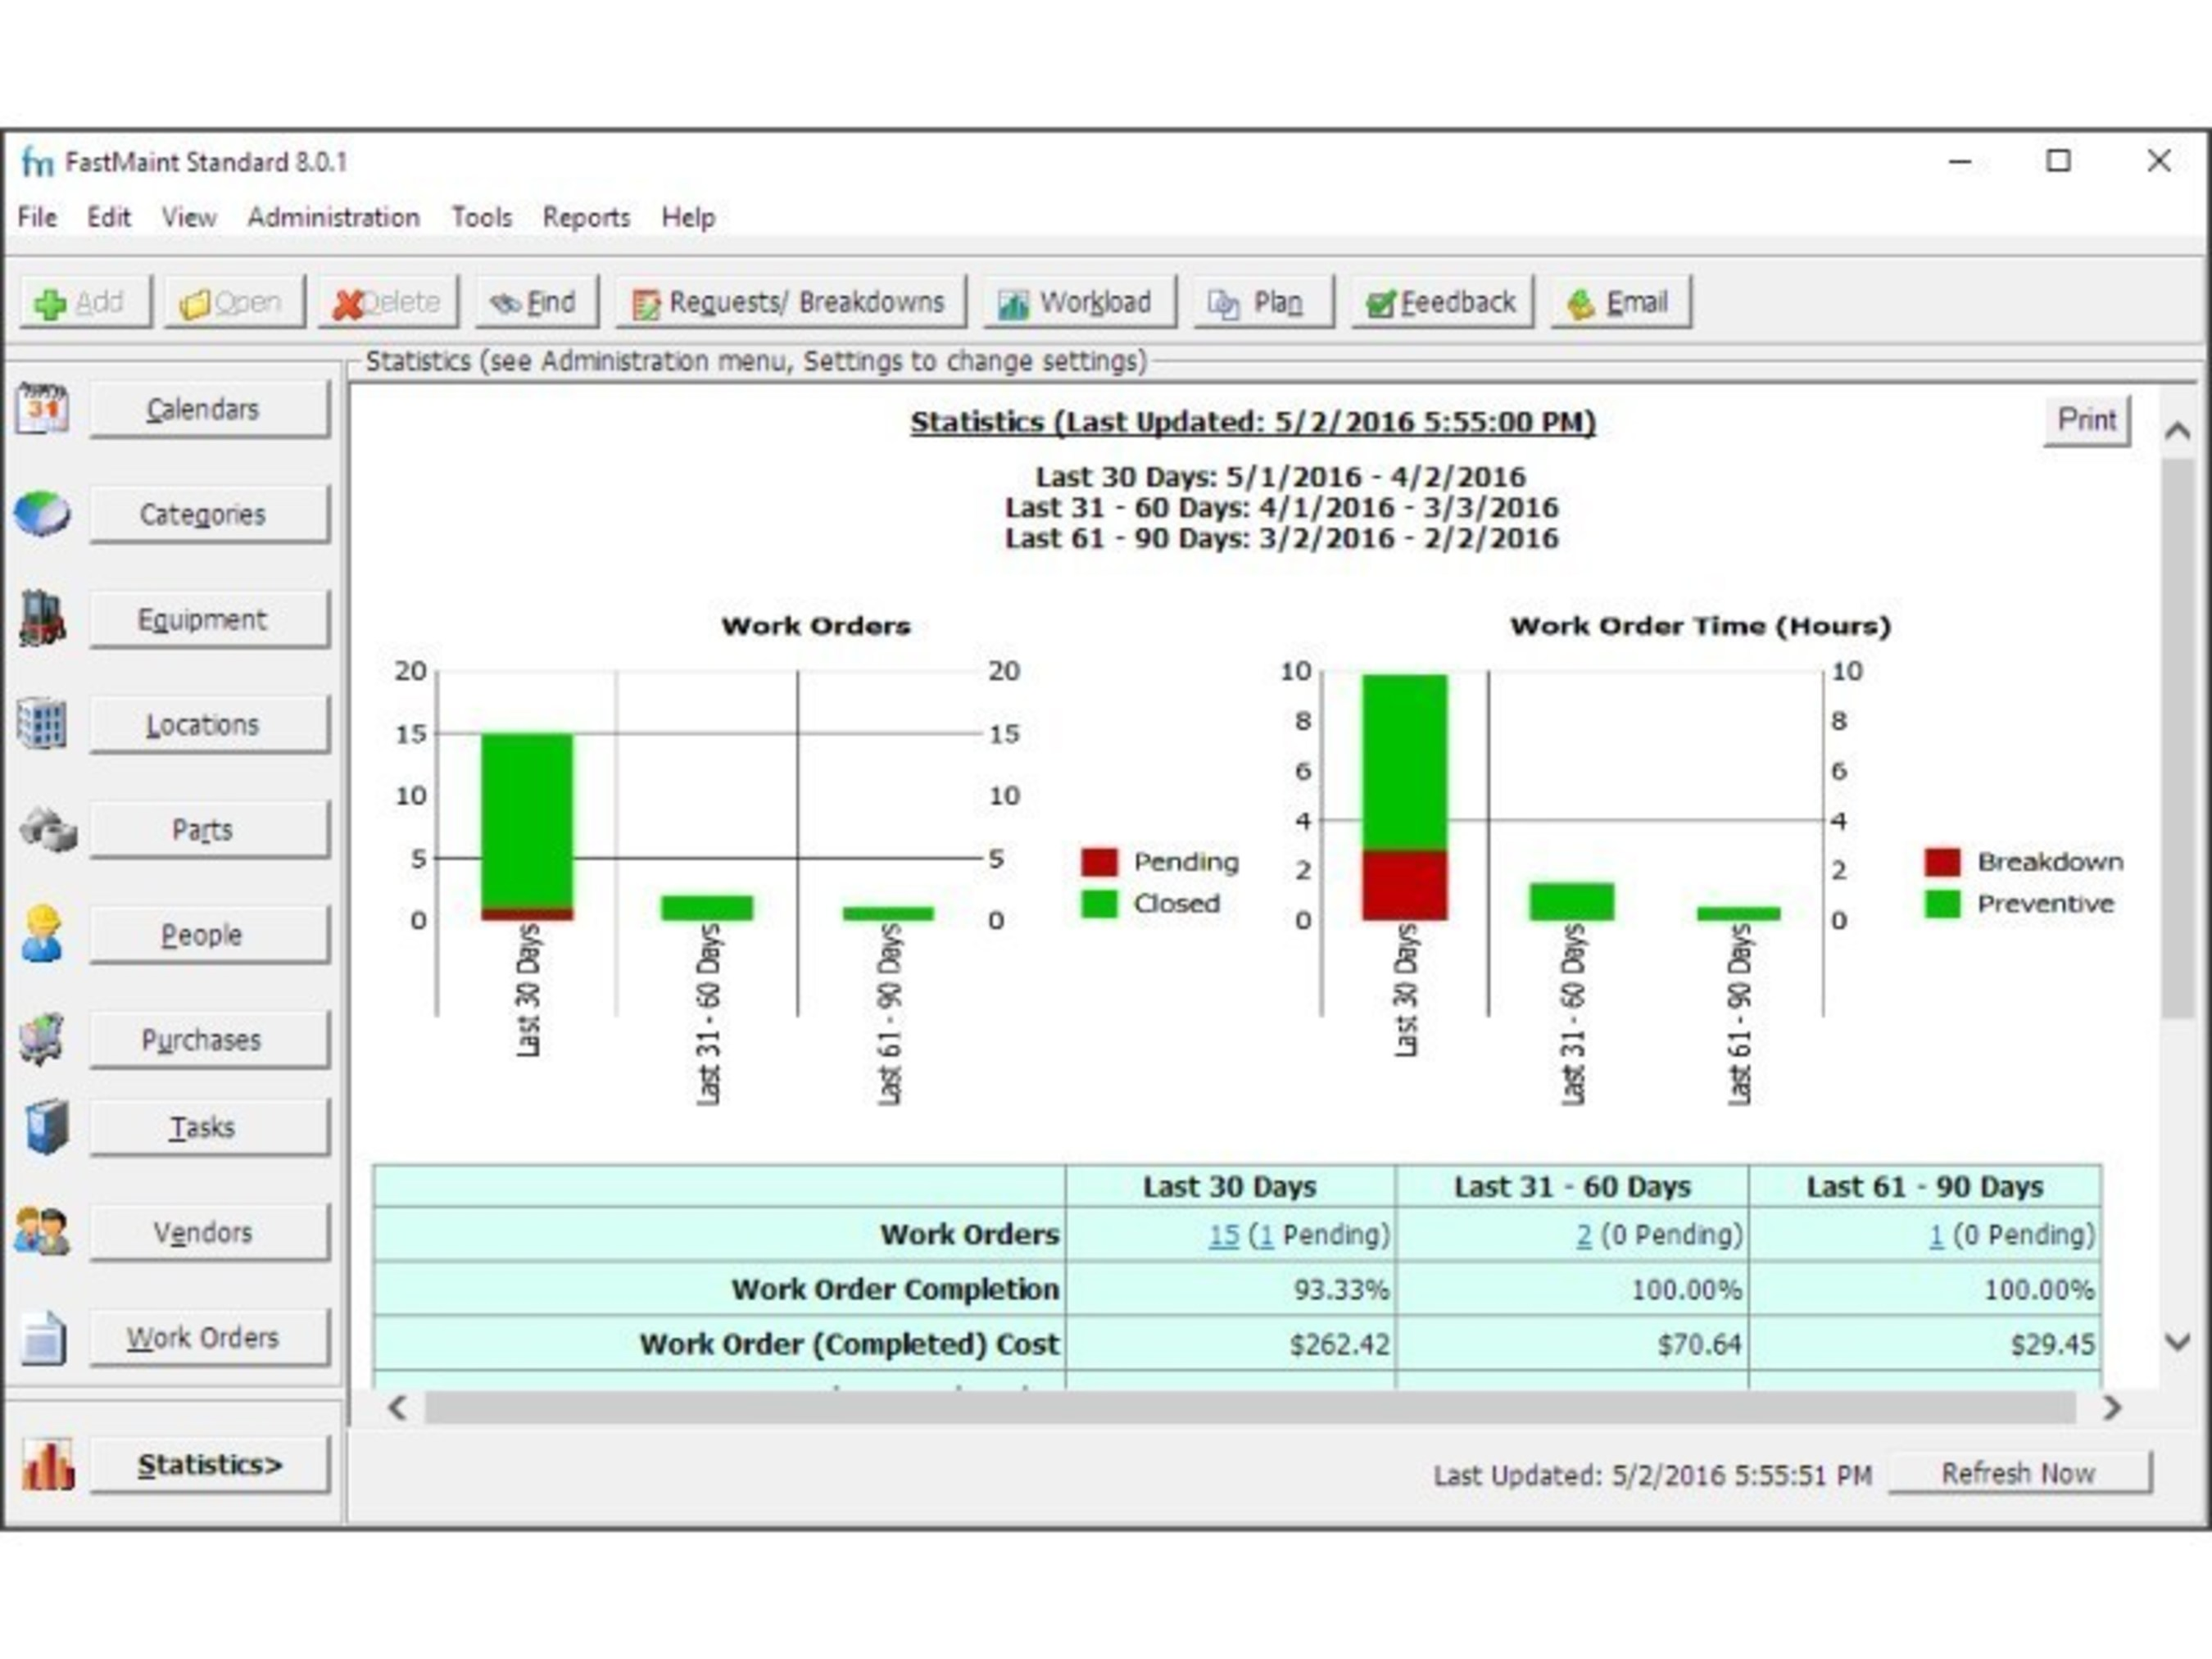 SMGlobal's FastMaint CMMS Software for Industrial Equipment